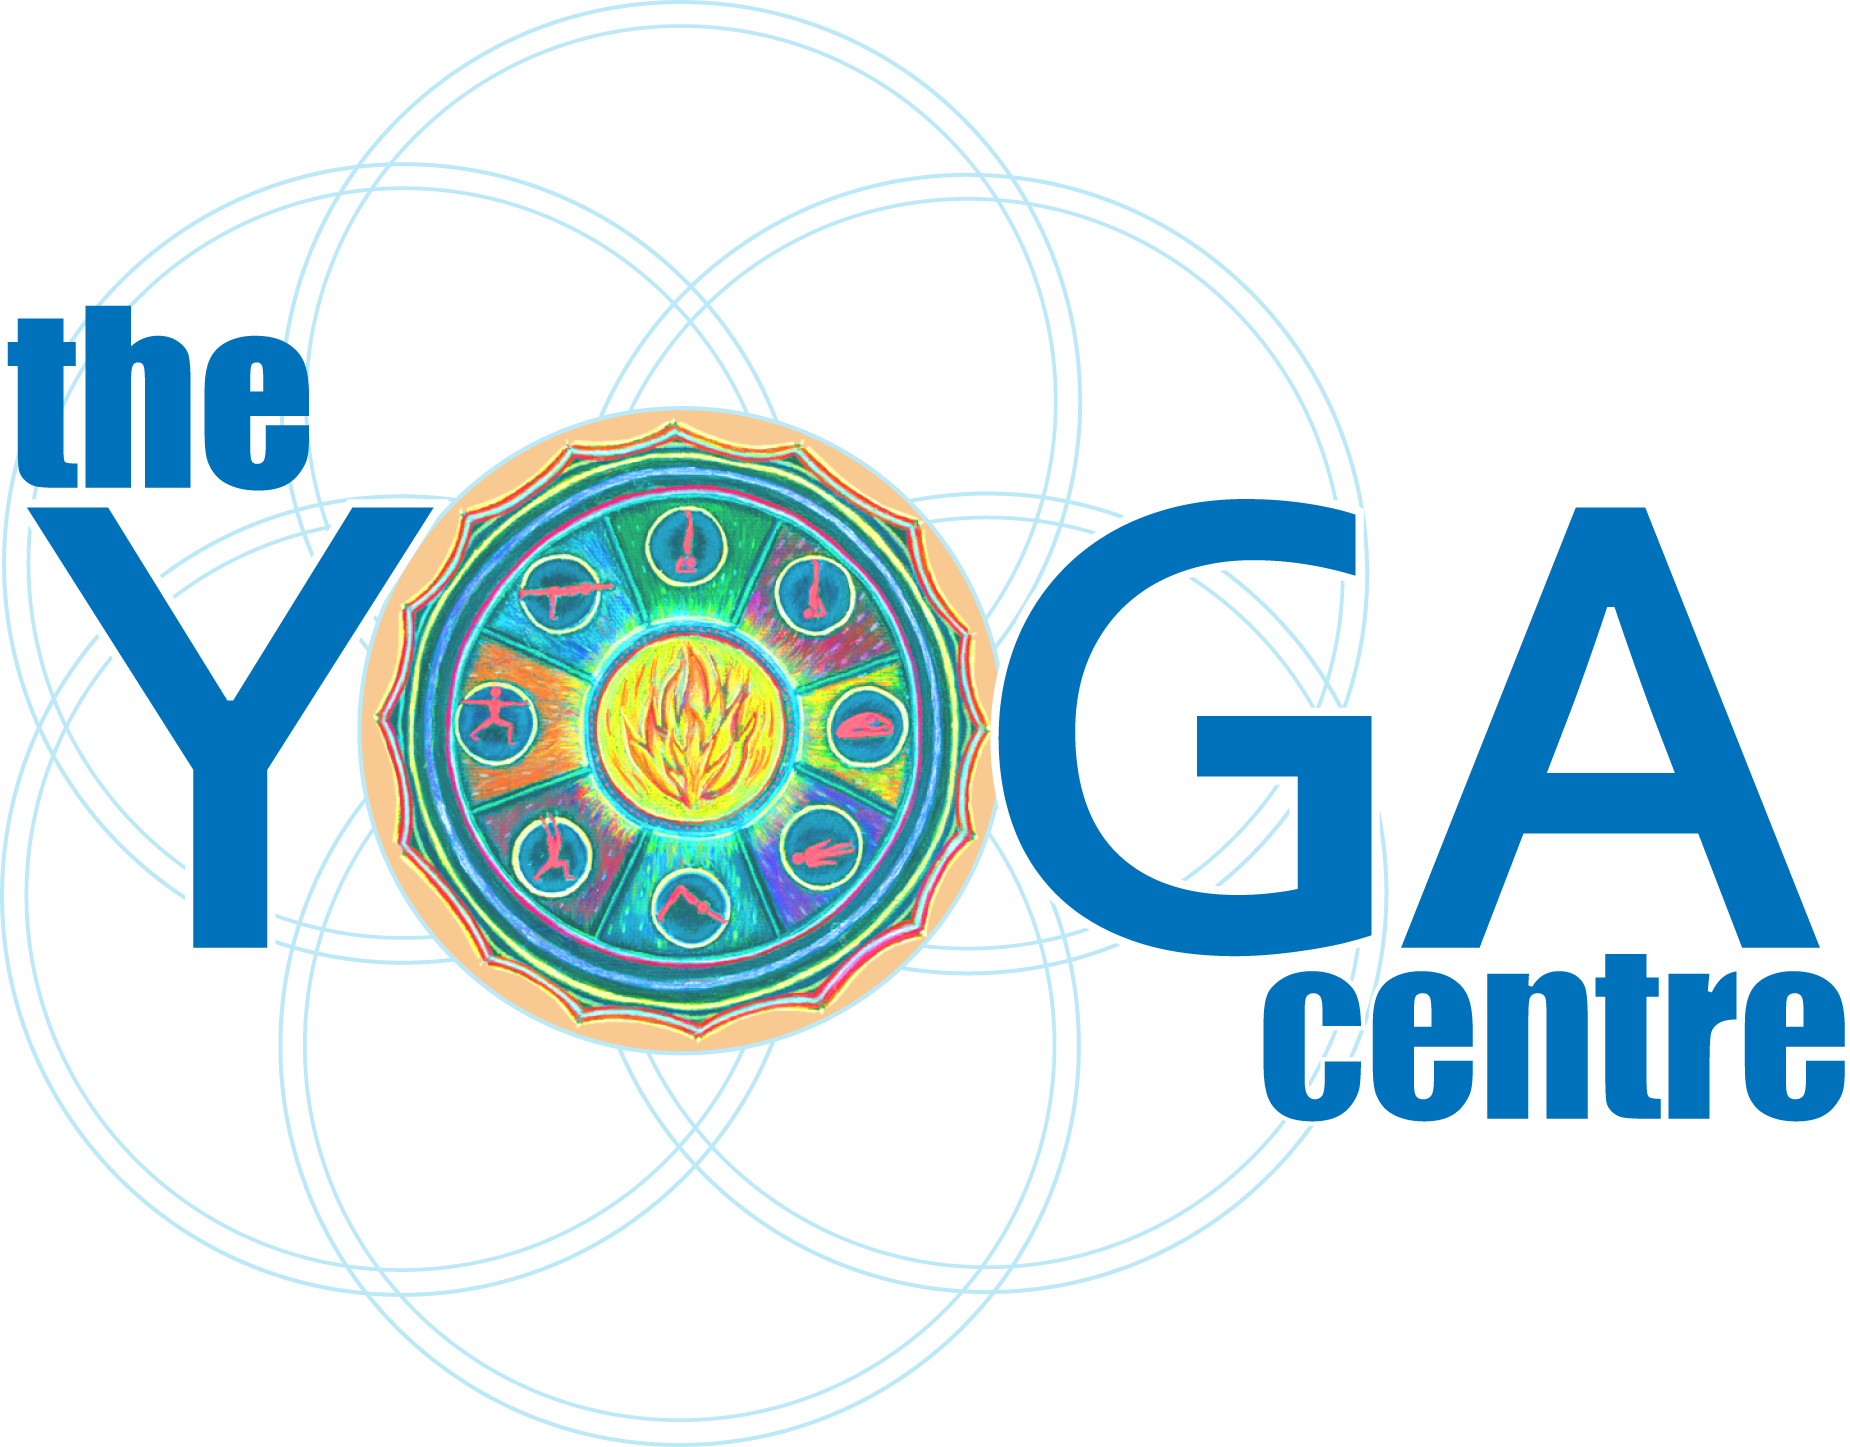 TheYogaCentre.png